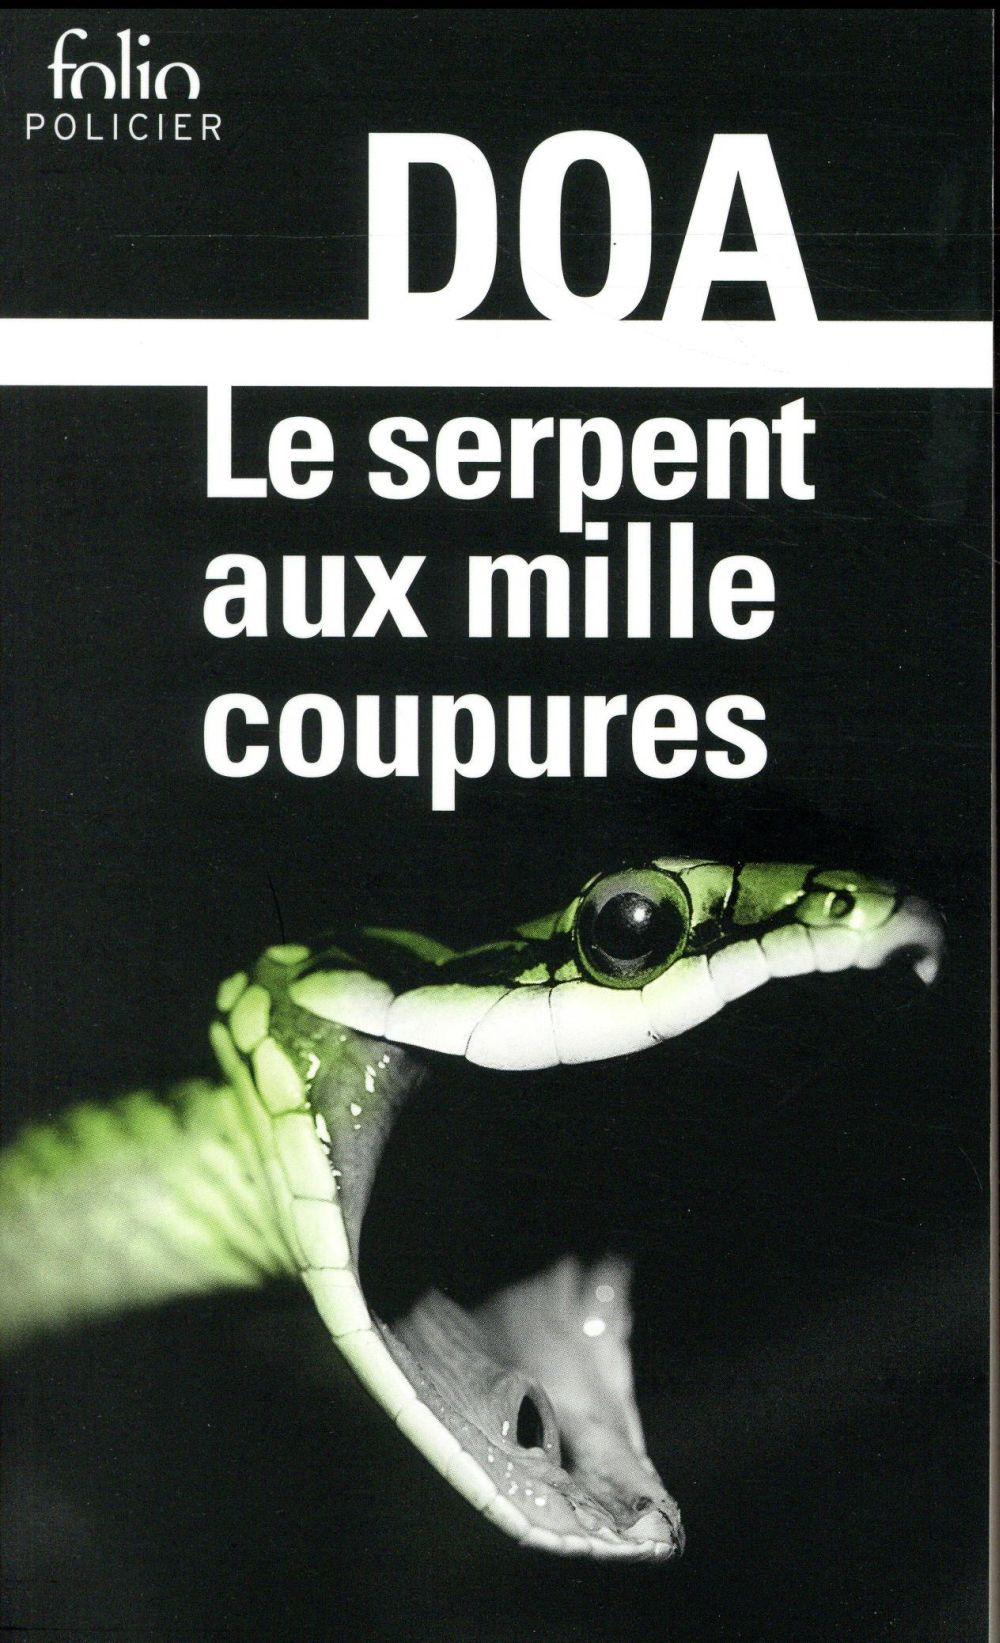 LE SERPENT AUX MILLE COUPURES